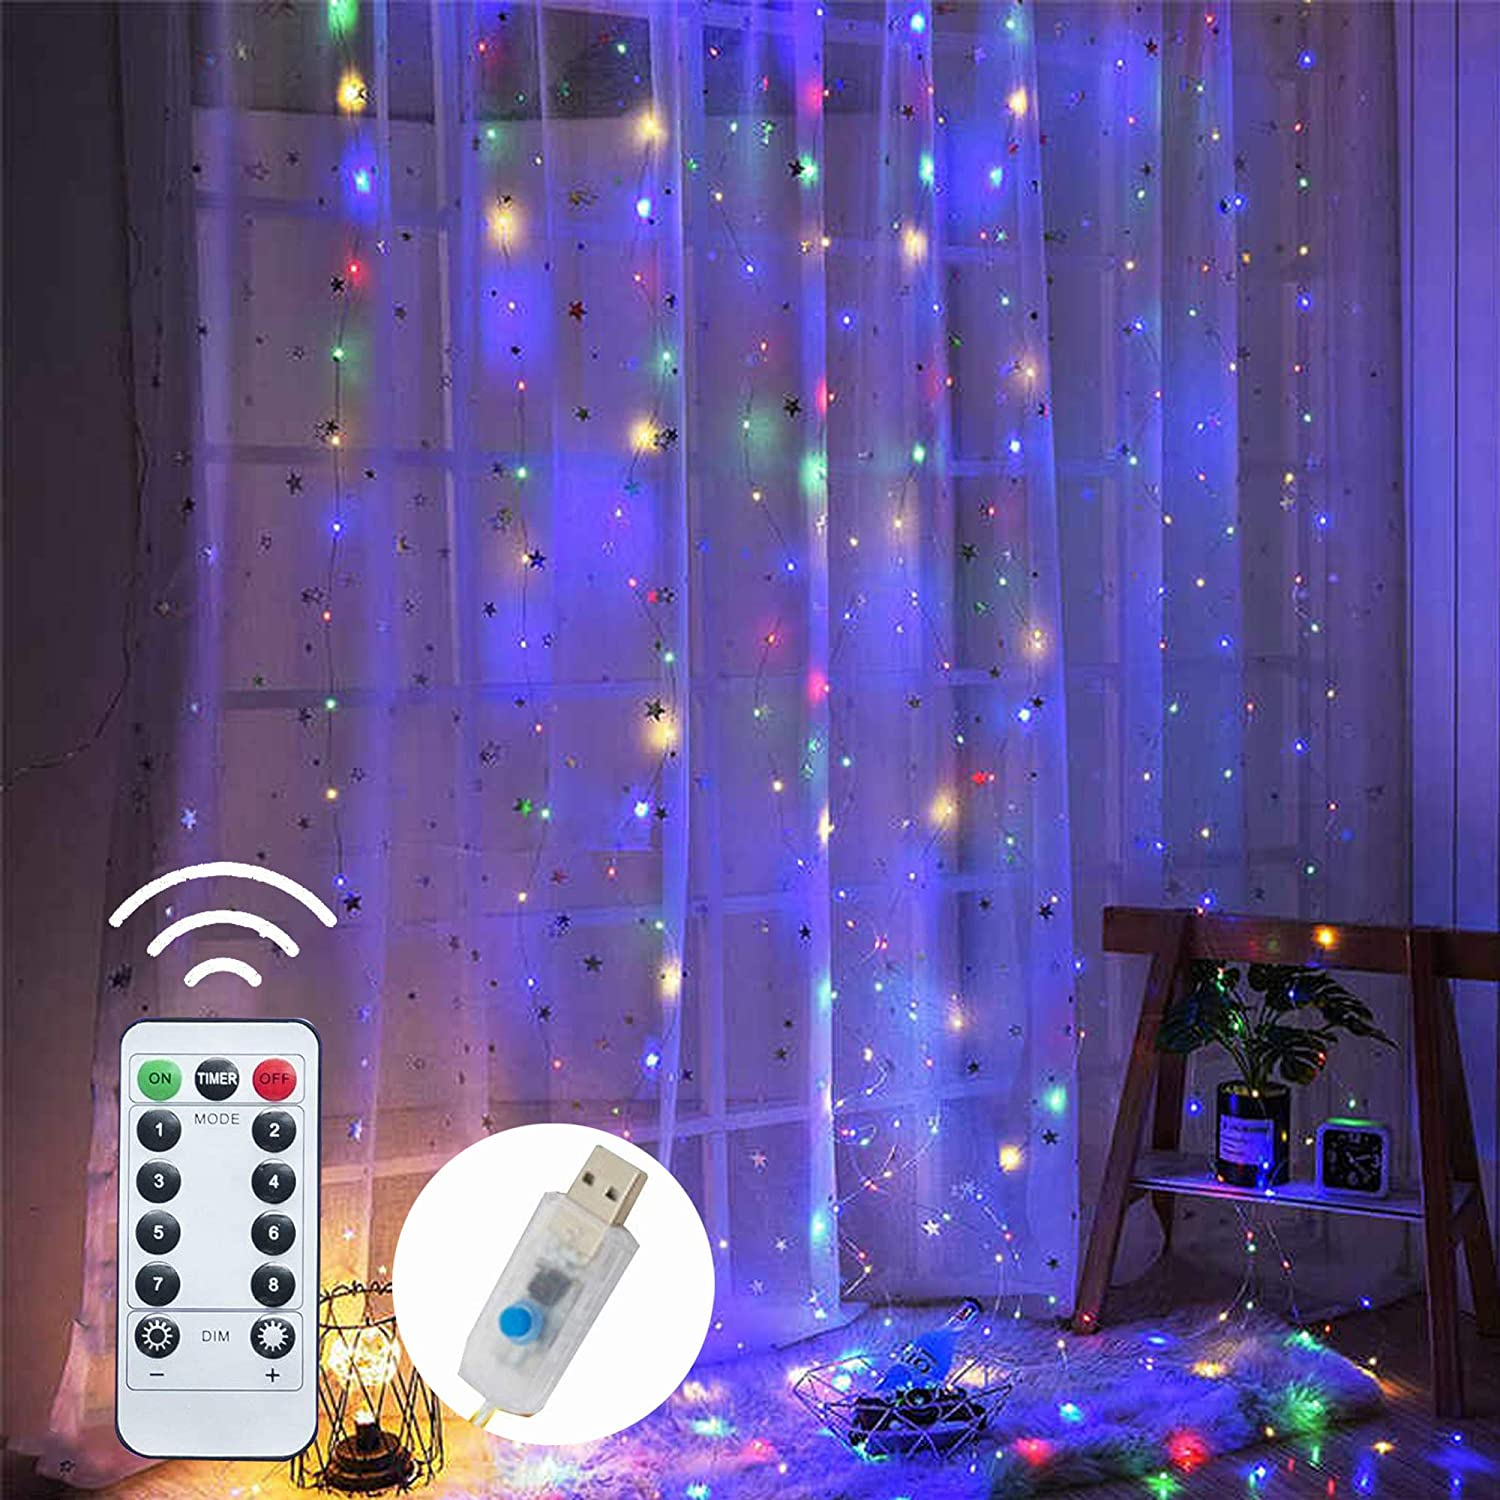 Dazzle Bright Window Curtain String Lights, 300 LED 9.8ft x 9.8ft Multicolor Fairy Lights with 8 Lighting Modes, Waterproof Lights for Bedroom Party Wedding Home Garden Wall Decor